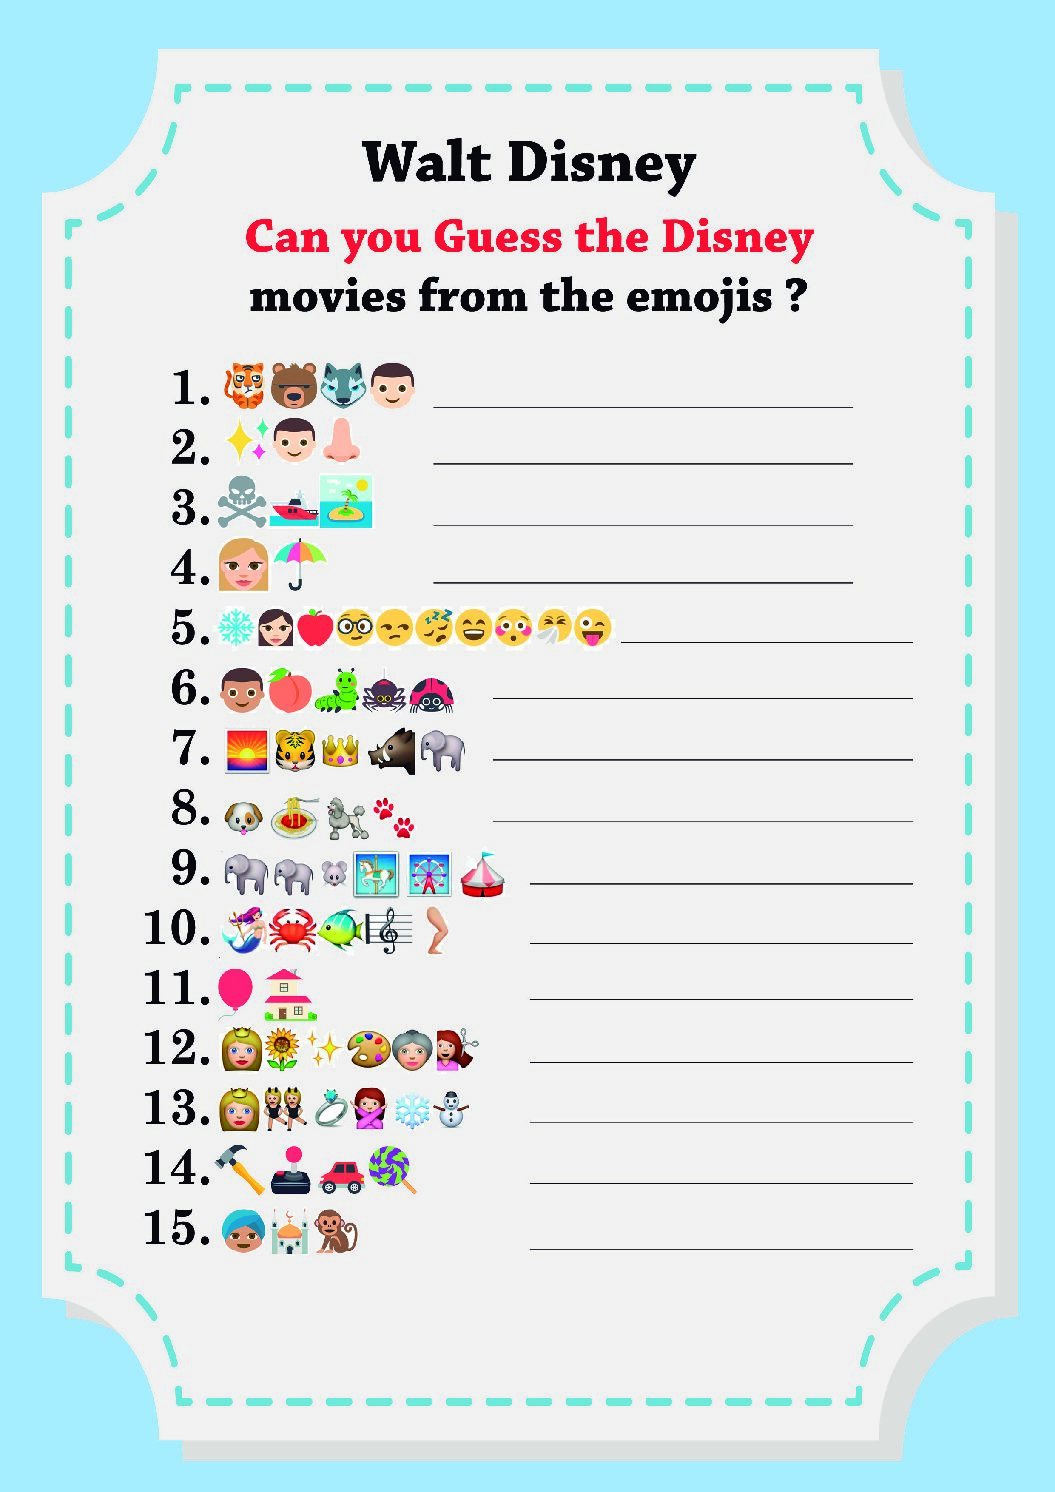 CAN-YOU-GUESS-THE-DISNEY-MOVIES-FROM-THE-EMOJIS-pdf Guess the Emoji Print Out Sheets